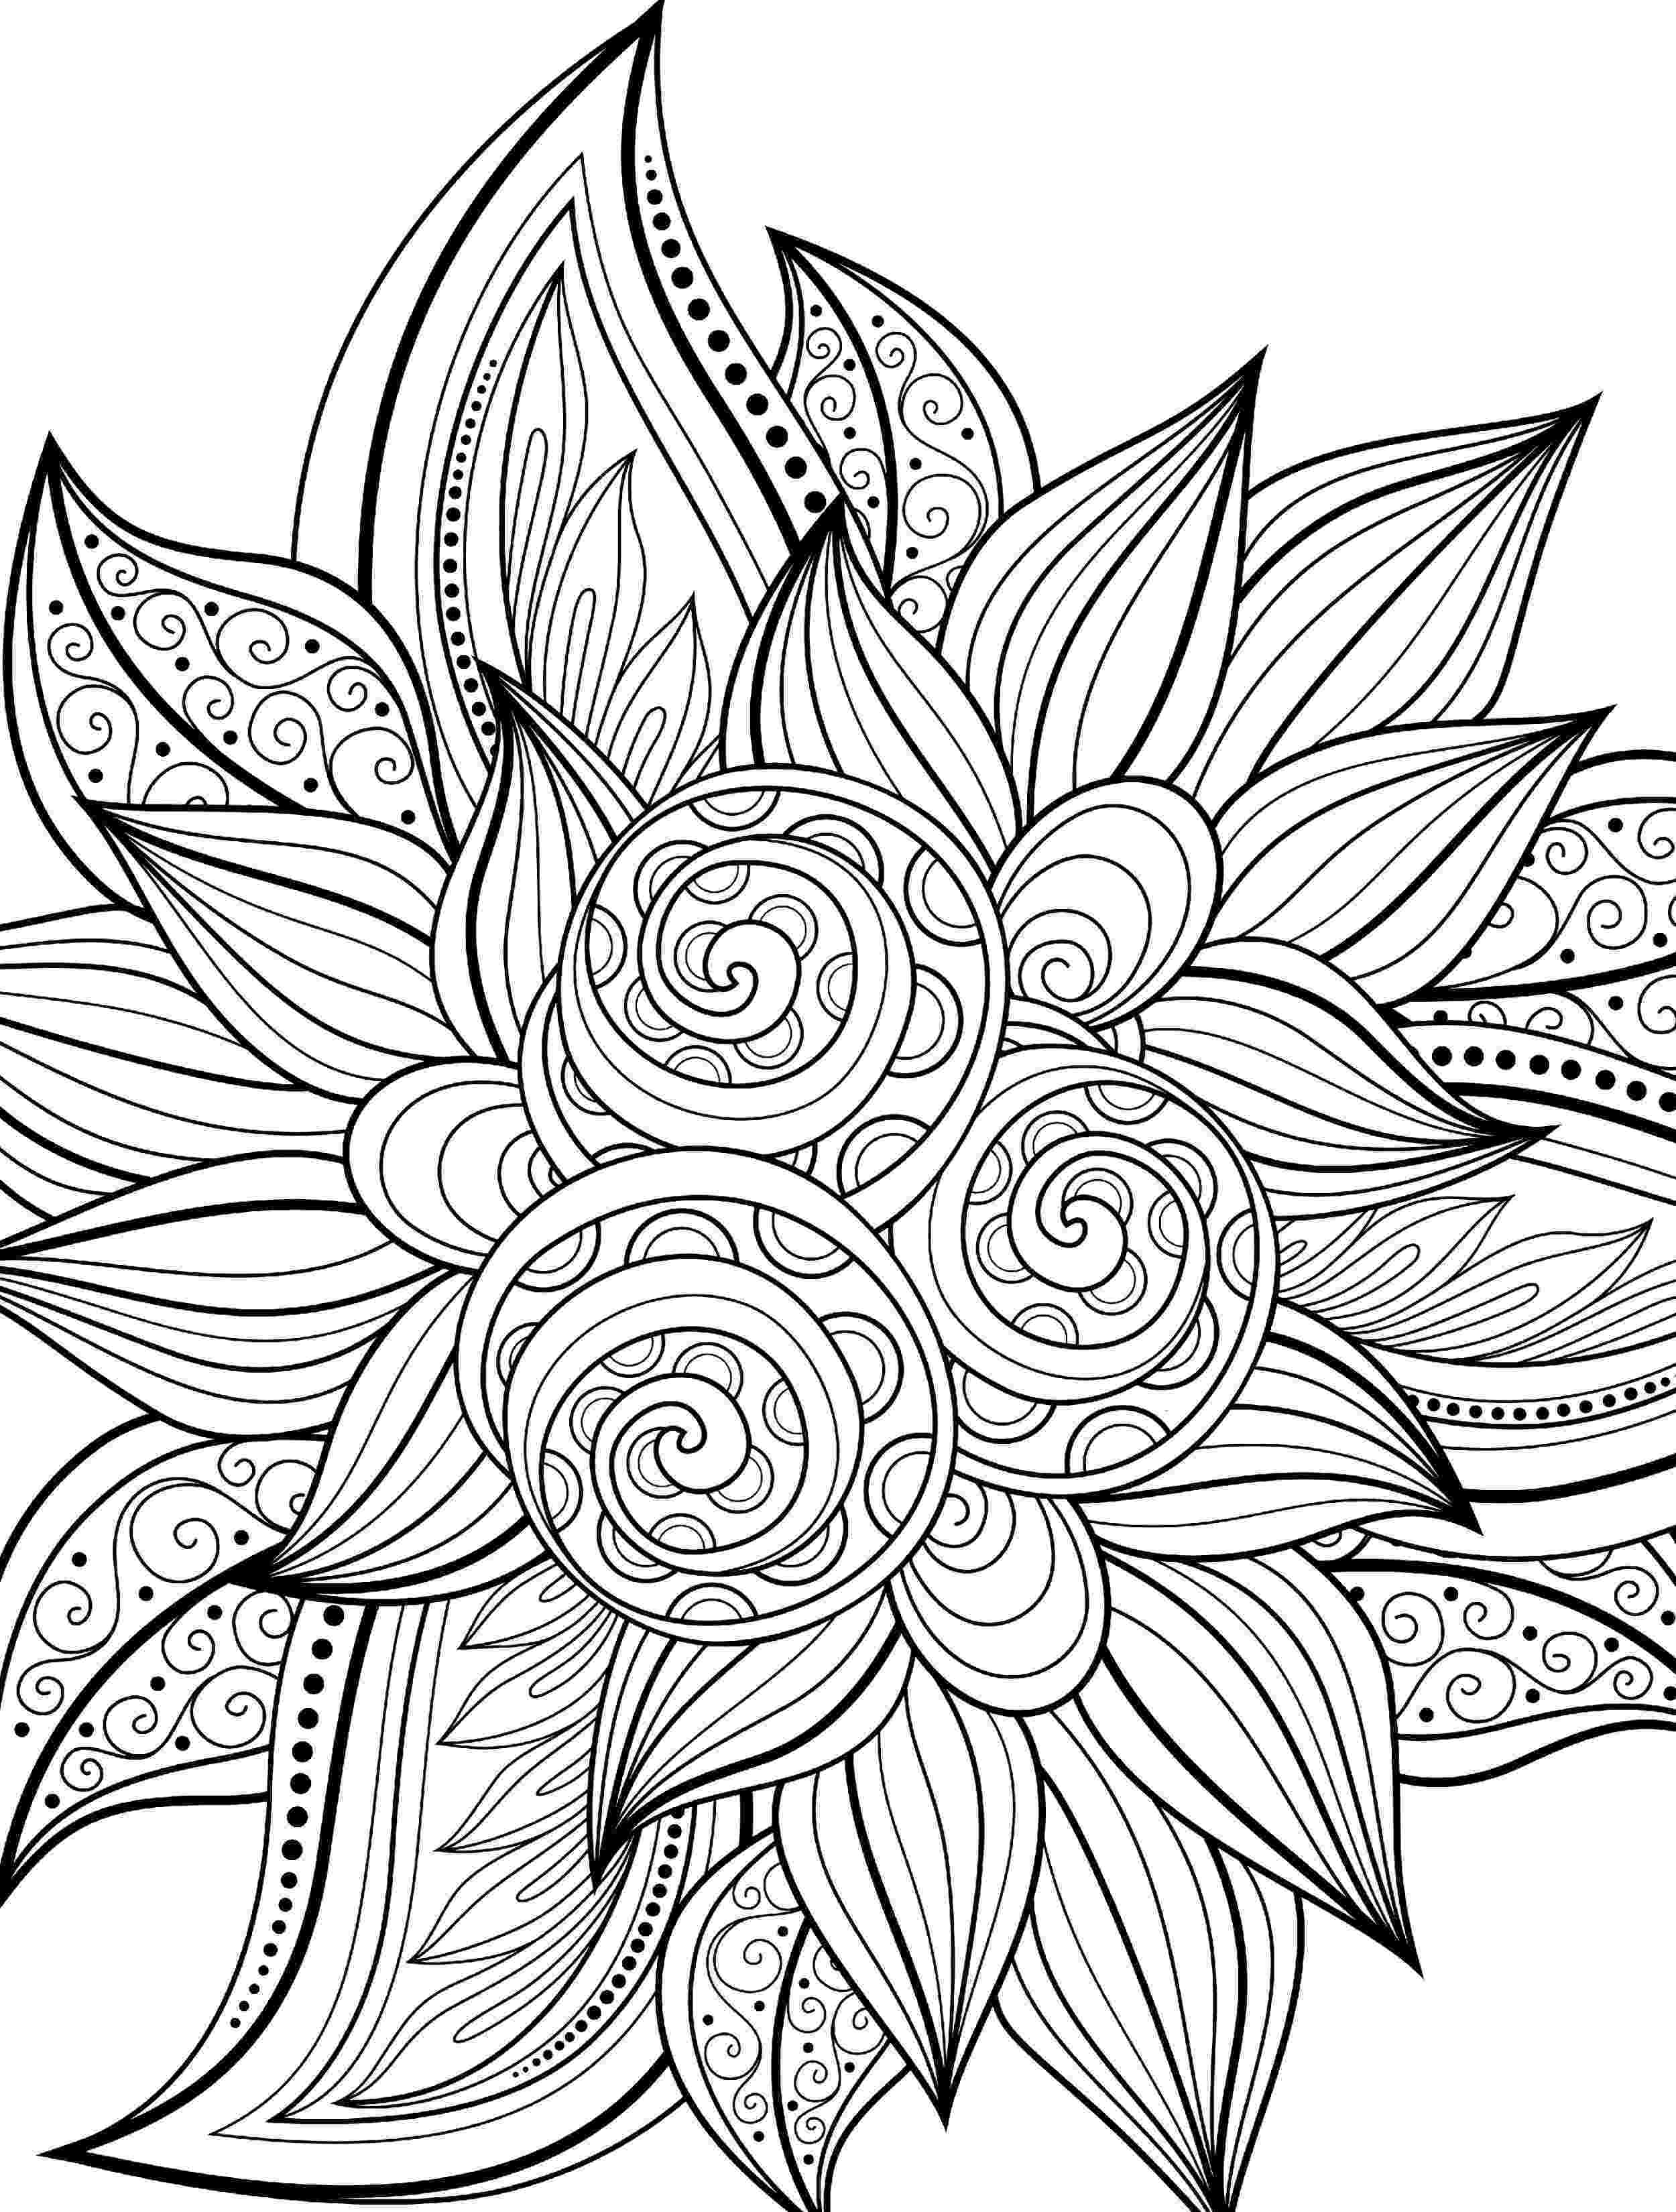 cool coloring pages printable printable coloring pages for adults 15 free designs pages cool coloring printable